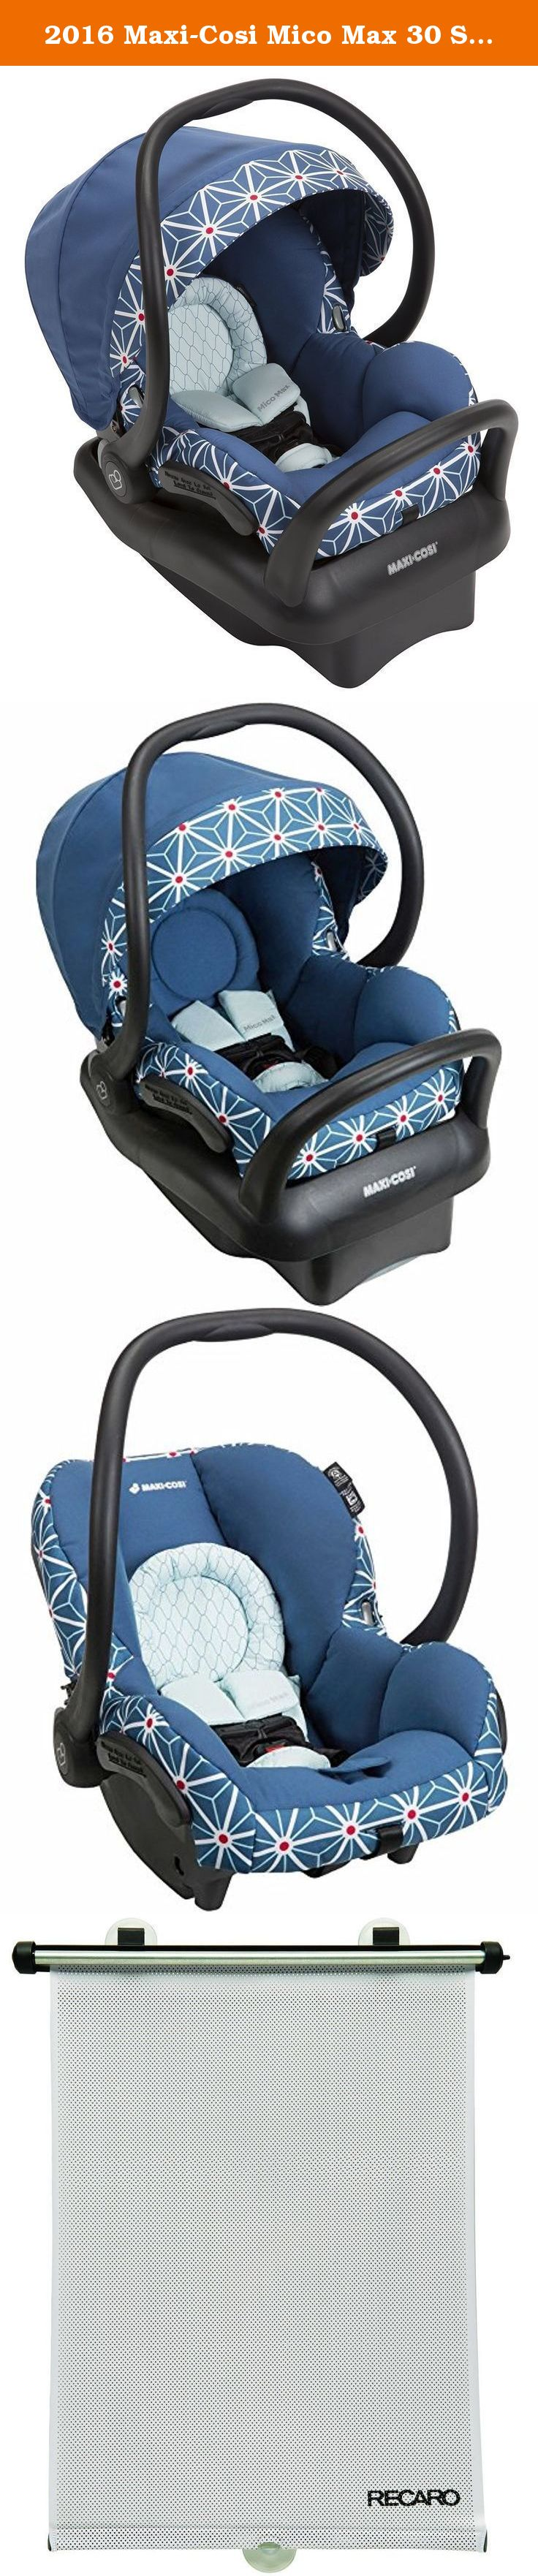 2016 Maxi Cosi Mico Max 30 Special Edition Infant Car Seat Star By Edward